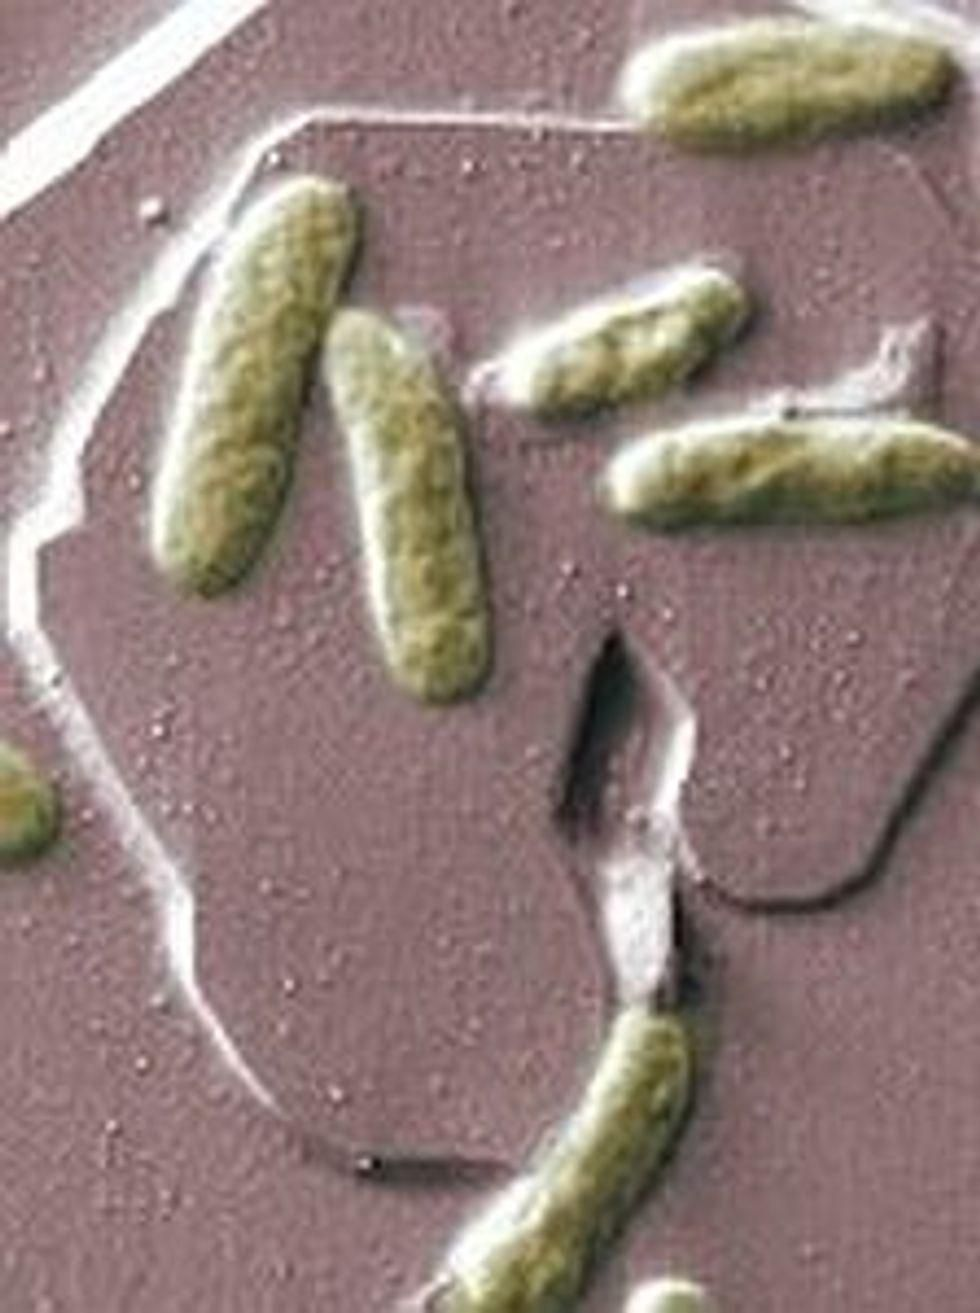 4th Case of Rare Tropical Illness Found in US